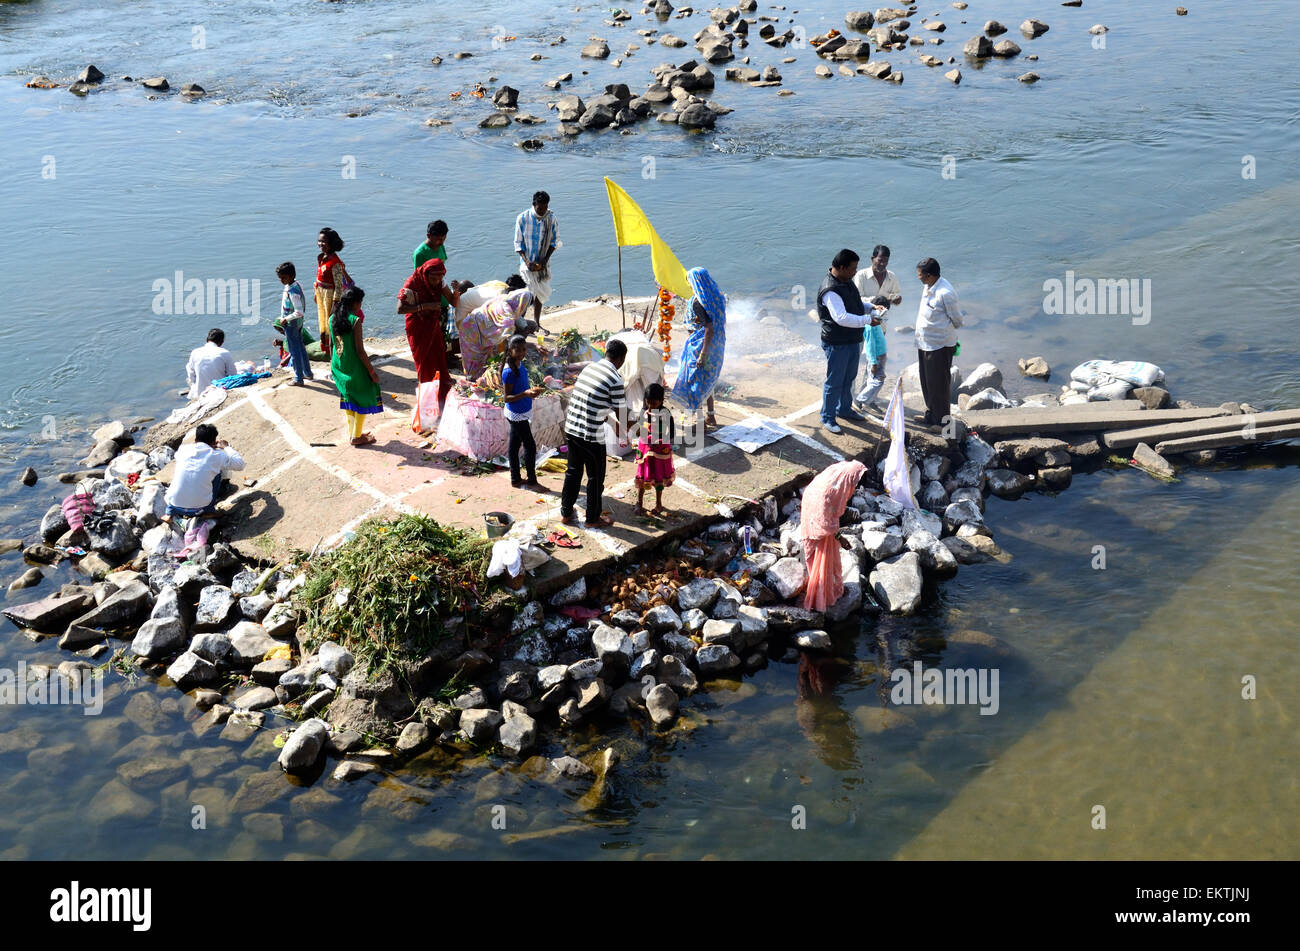 Indian Hindu worshipers at the Narbada River Shiva Festival Madhya Pradeshn India - Stock Image